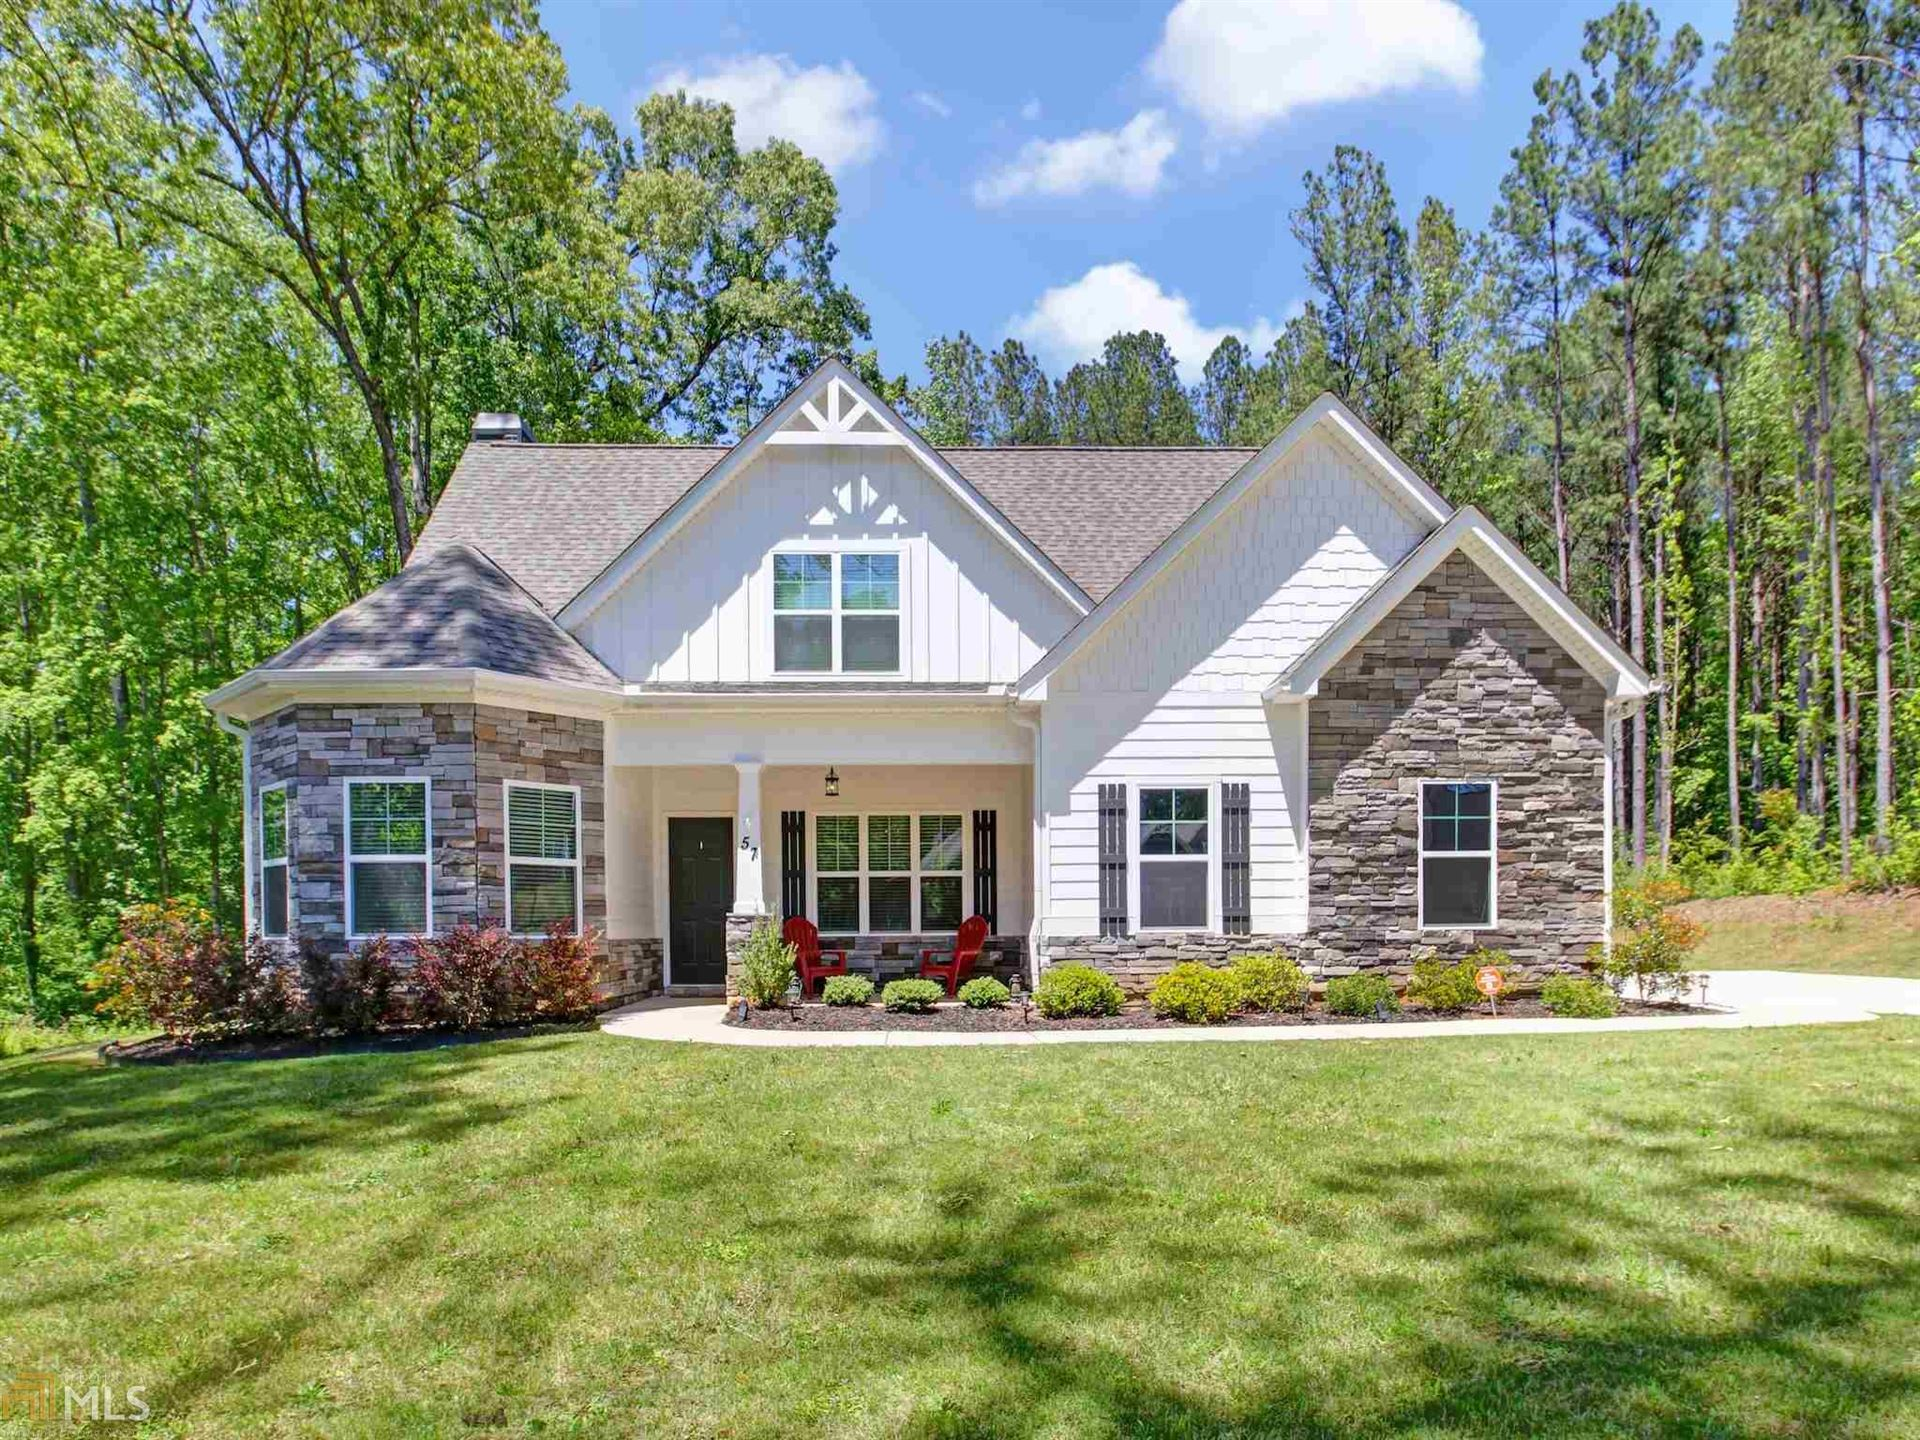 57 Ashlynn Brook Way, Senoia, GA 30276 - #: 8777387